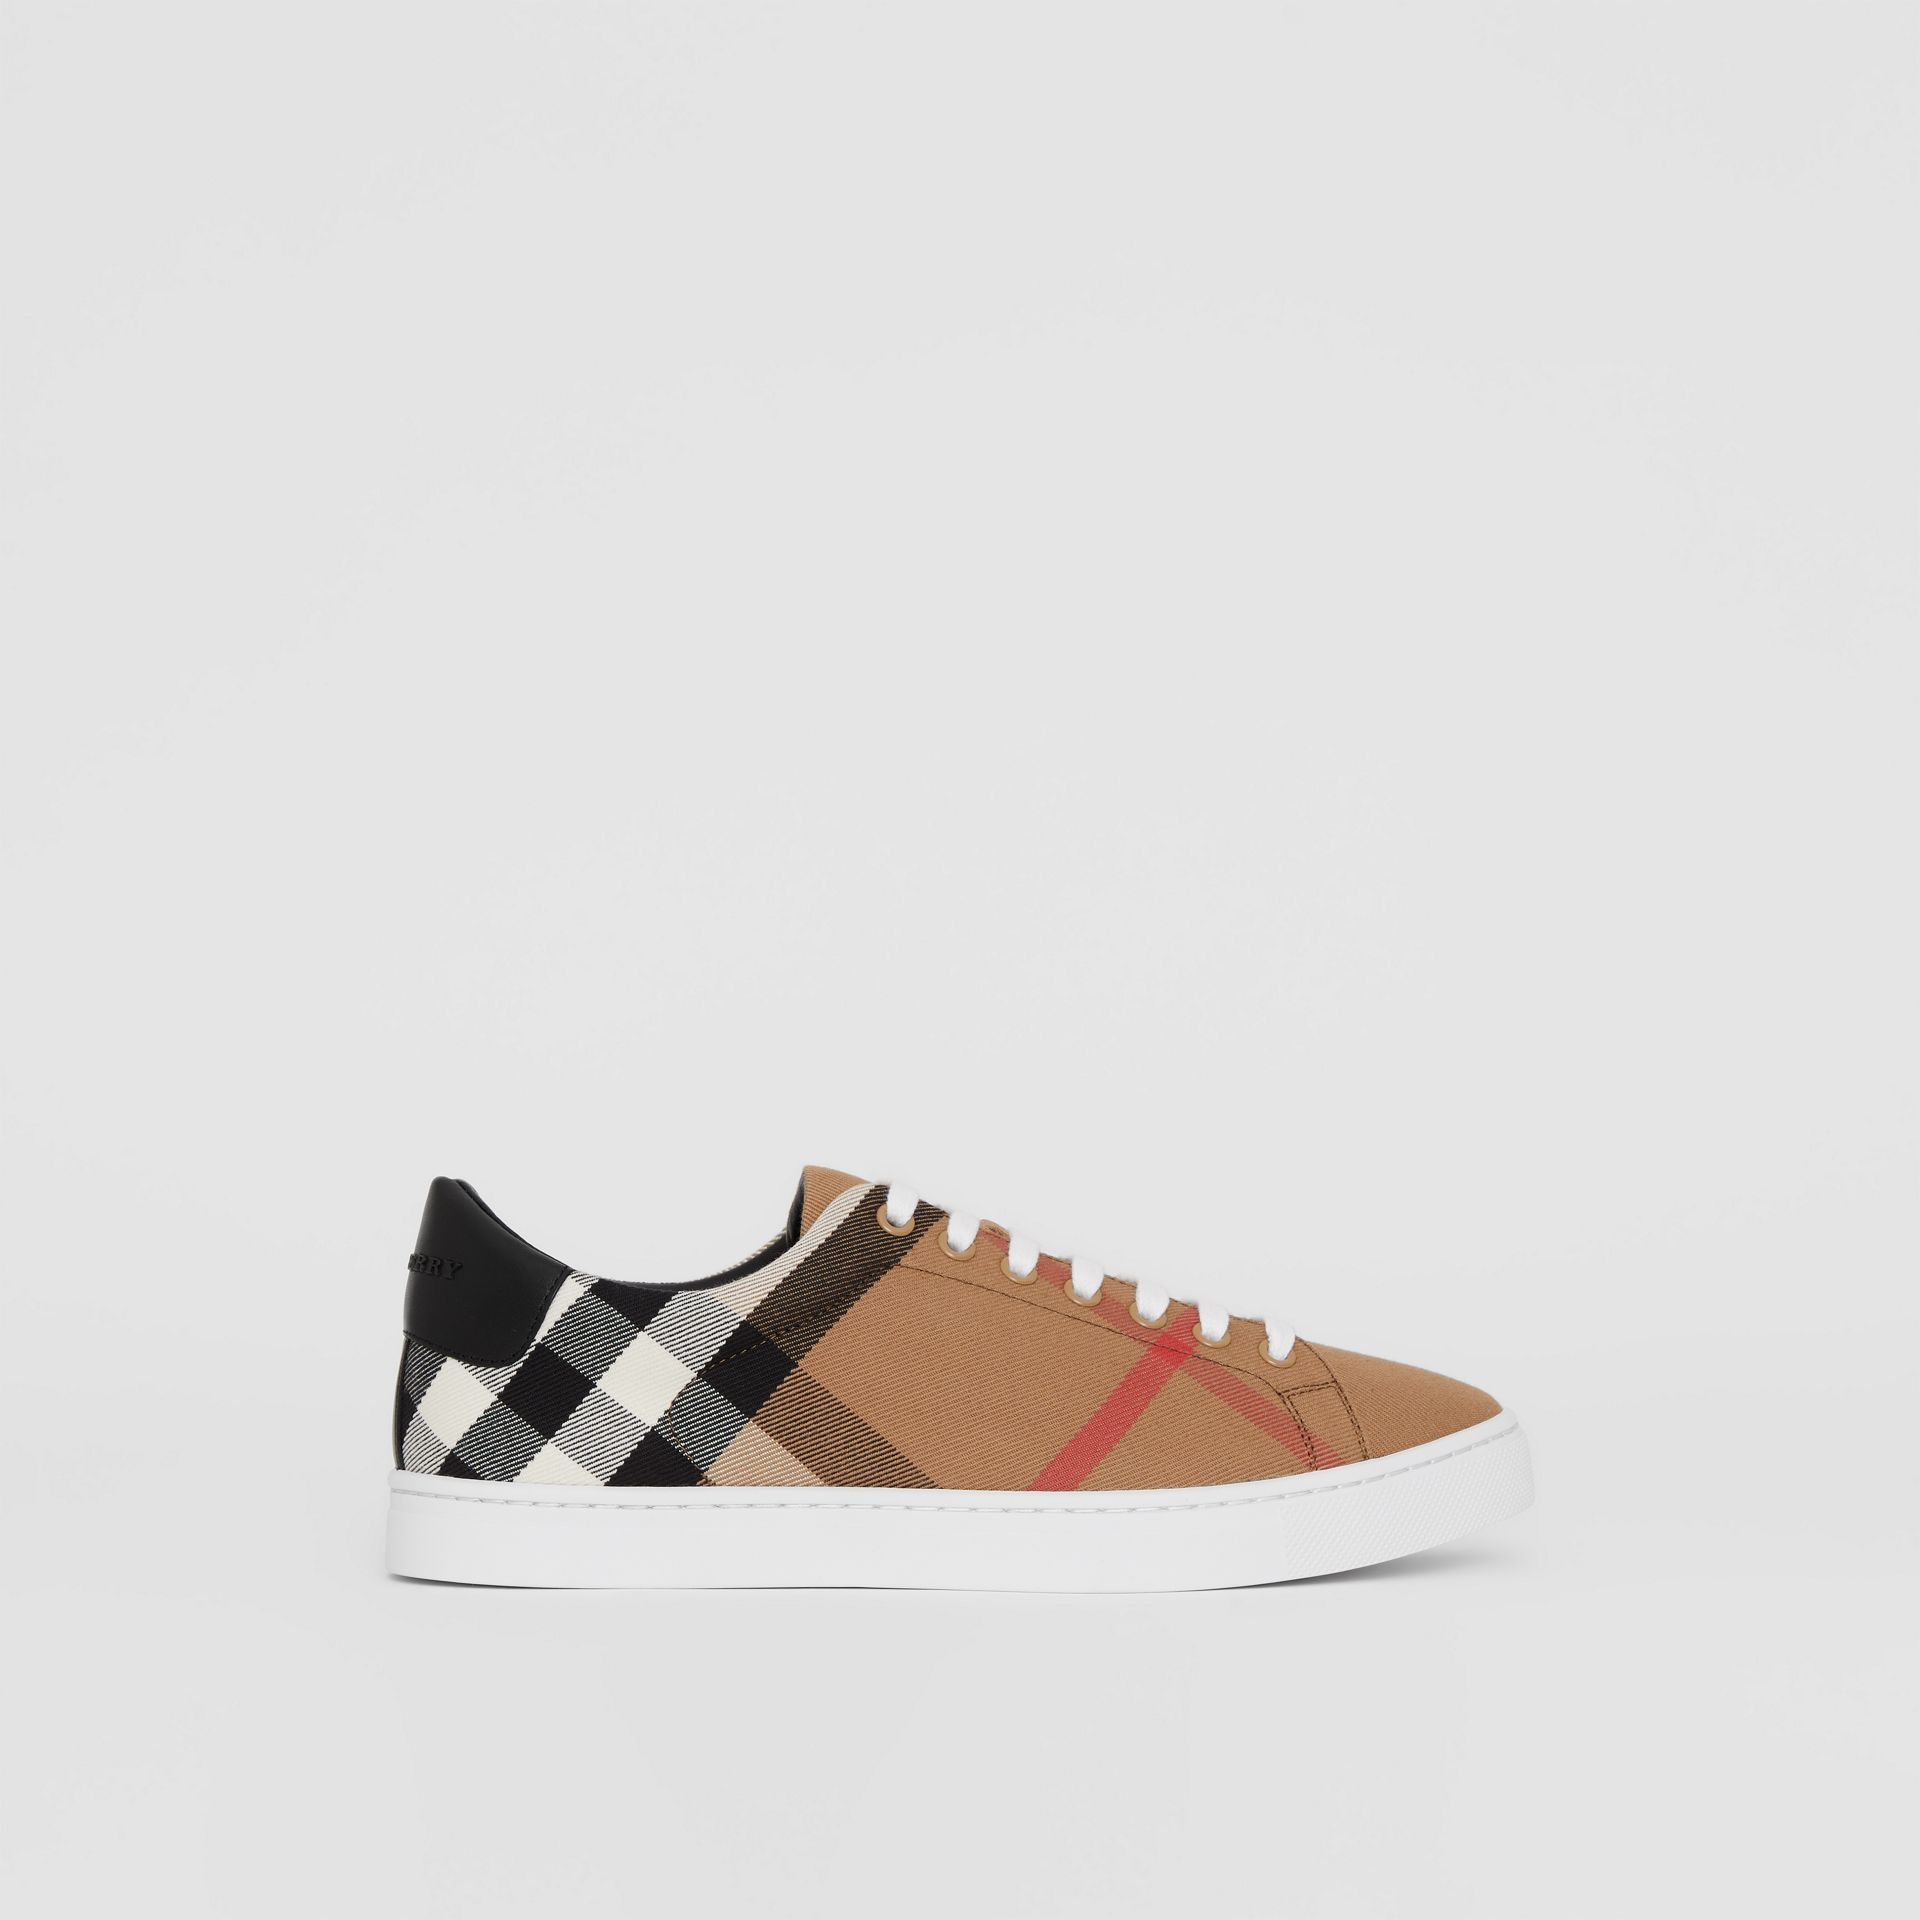 Sneakers en coton House check et cuir (Check/noir) - Homme | Burberry Canada - photo de la galerie 4